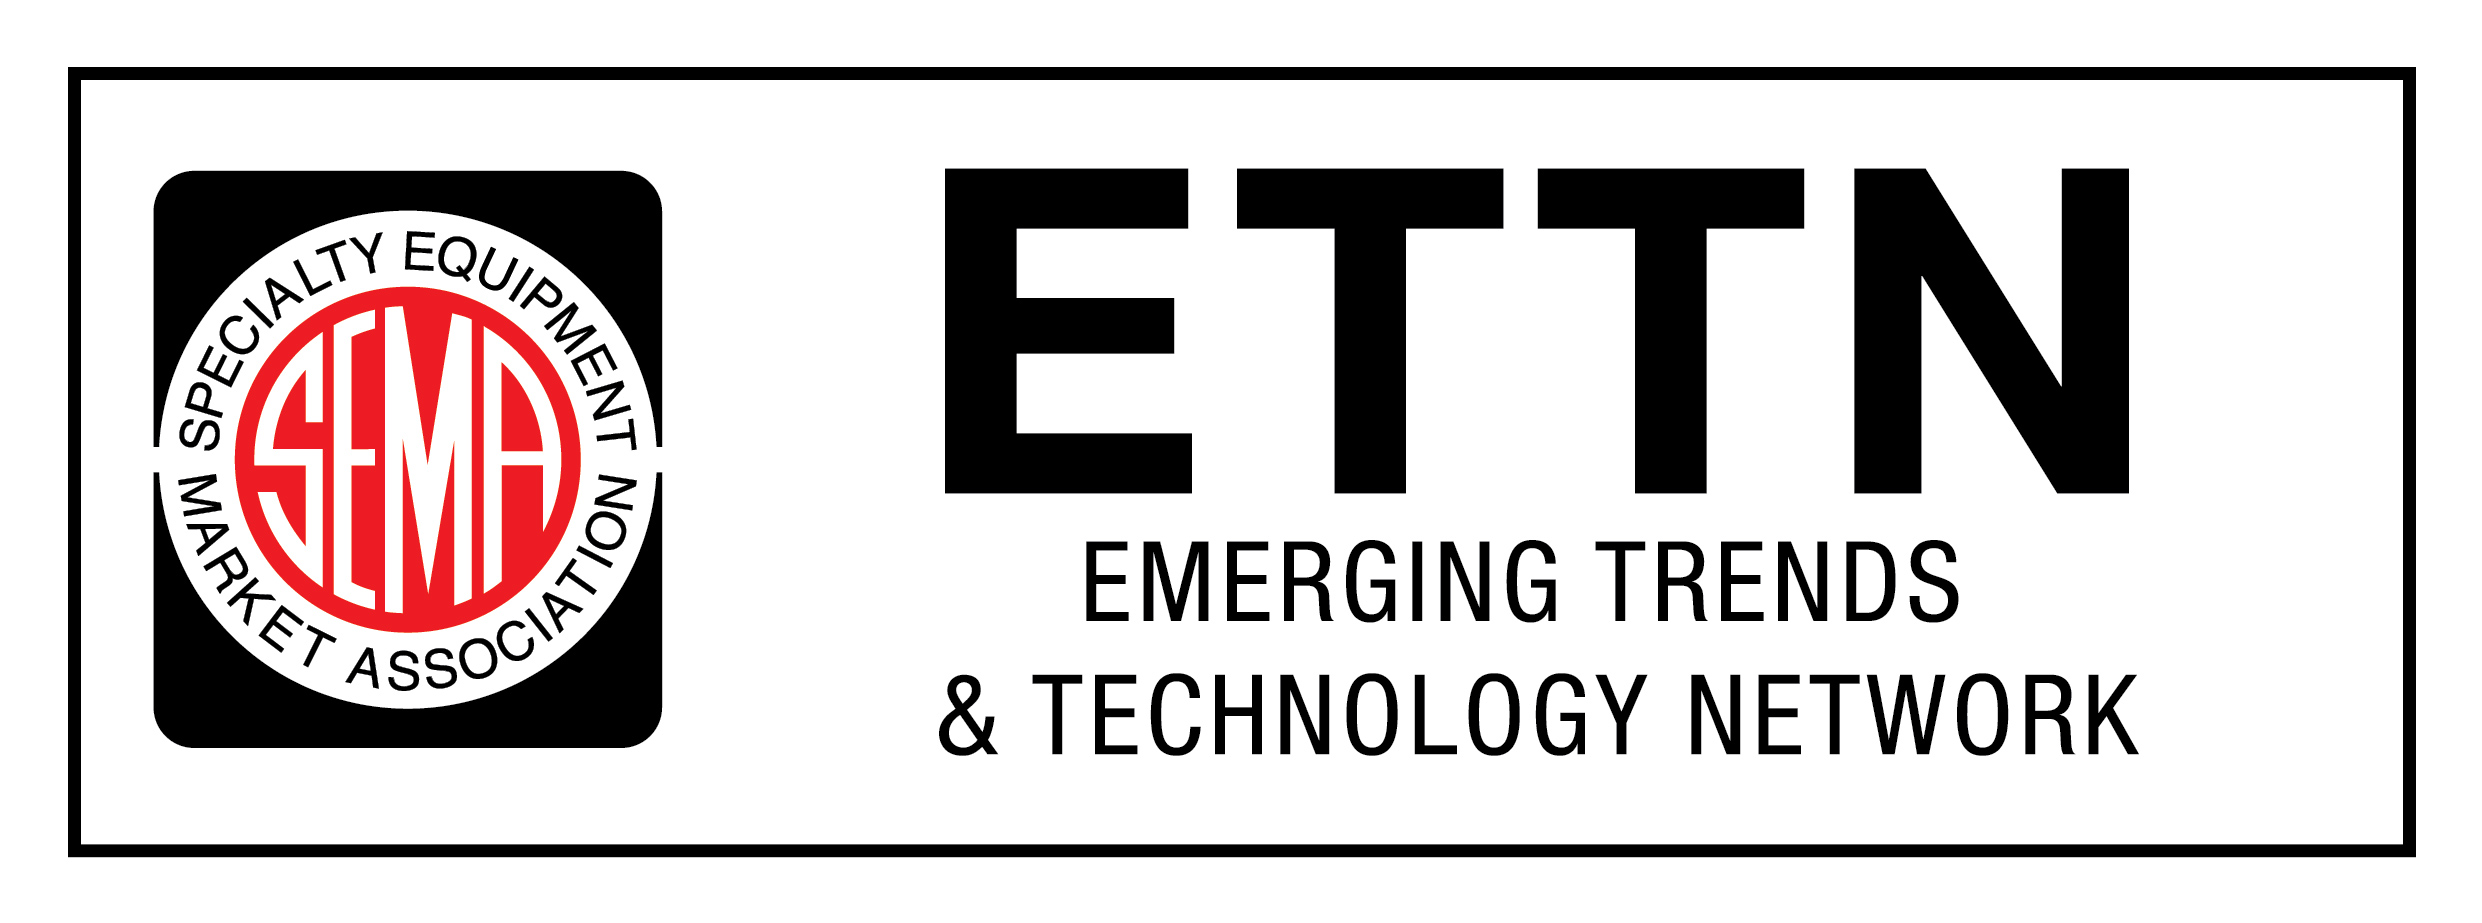 Emerging Trends & Technology Network (ETTN) - logo